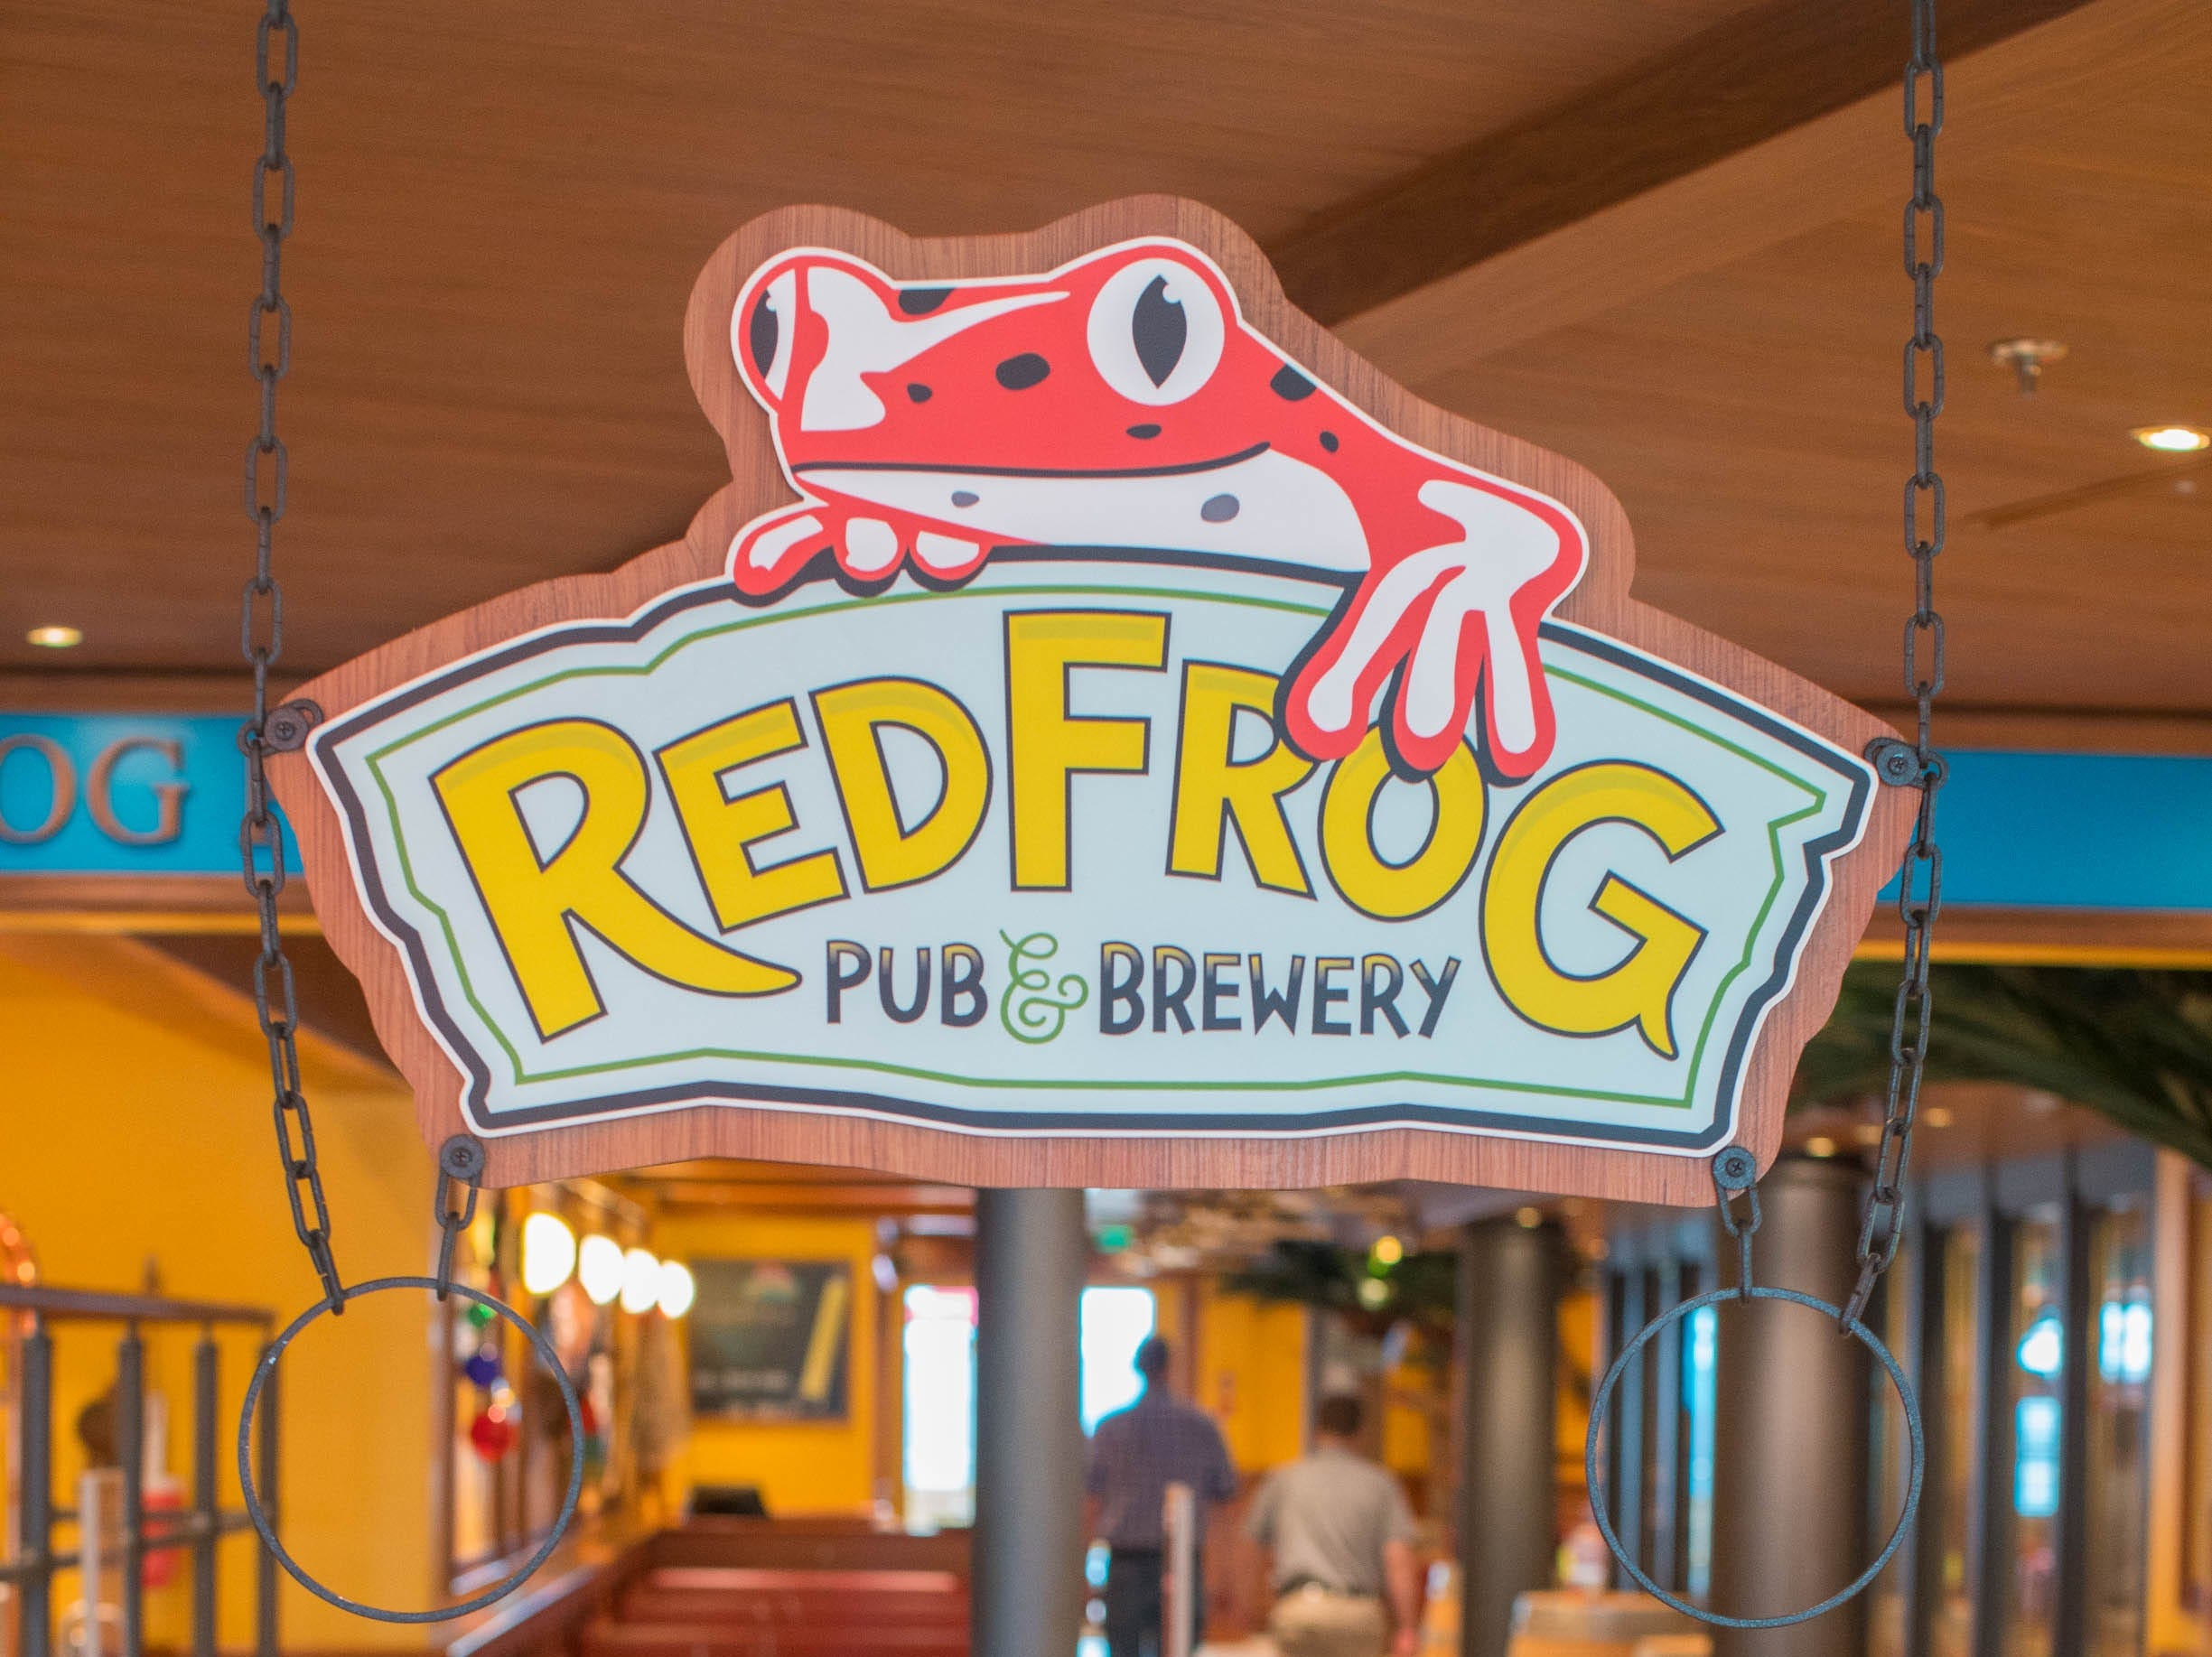 The RedFrog Pub & Brewery on Carnival Vista.